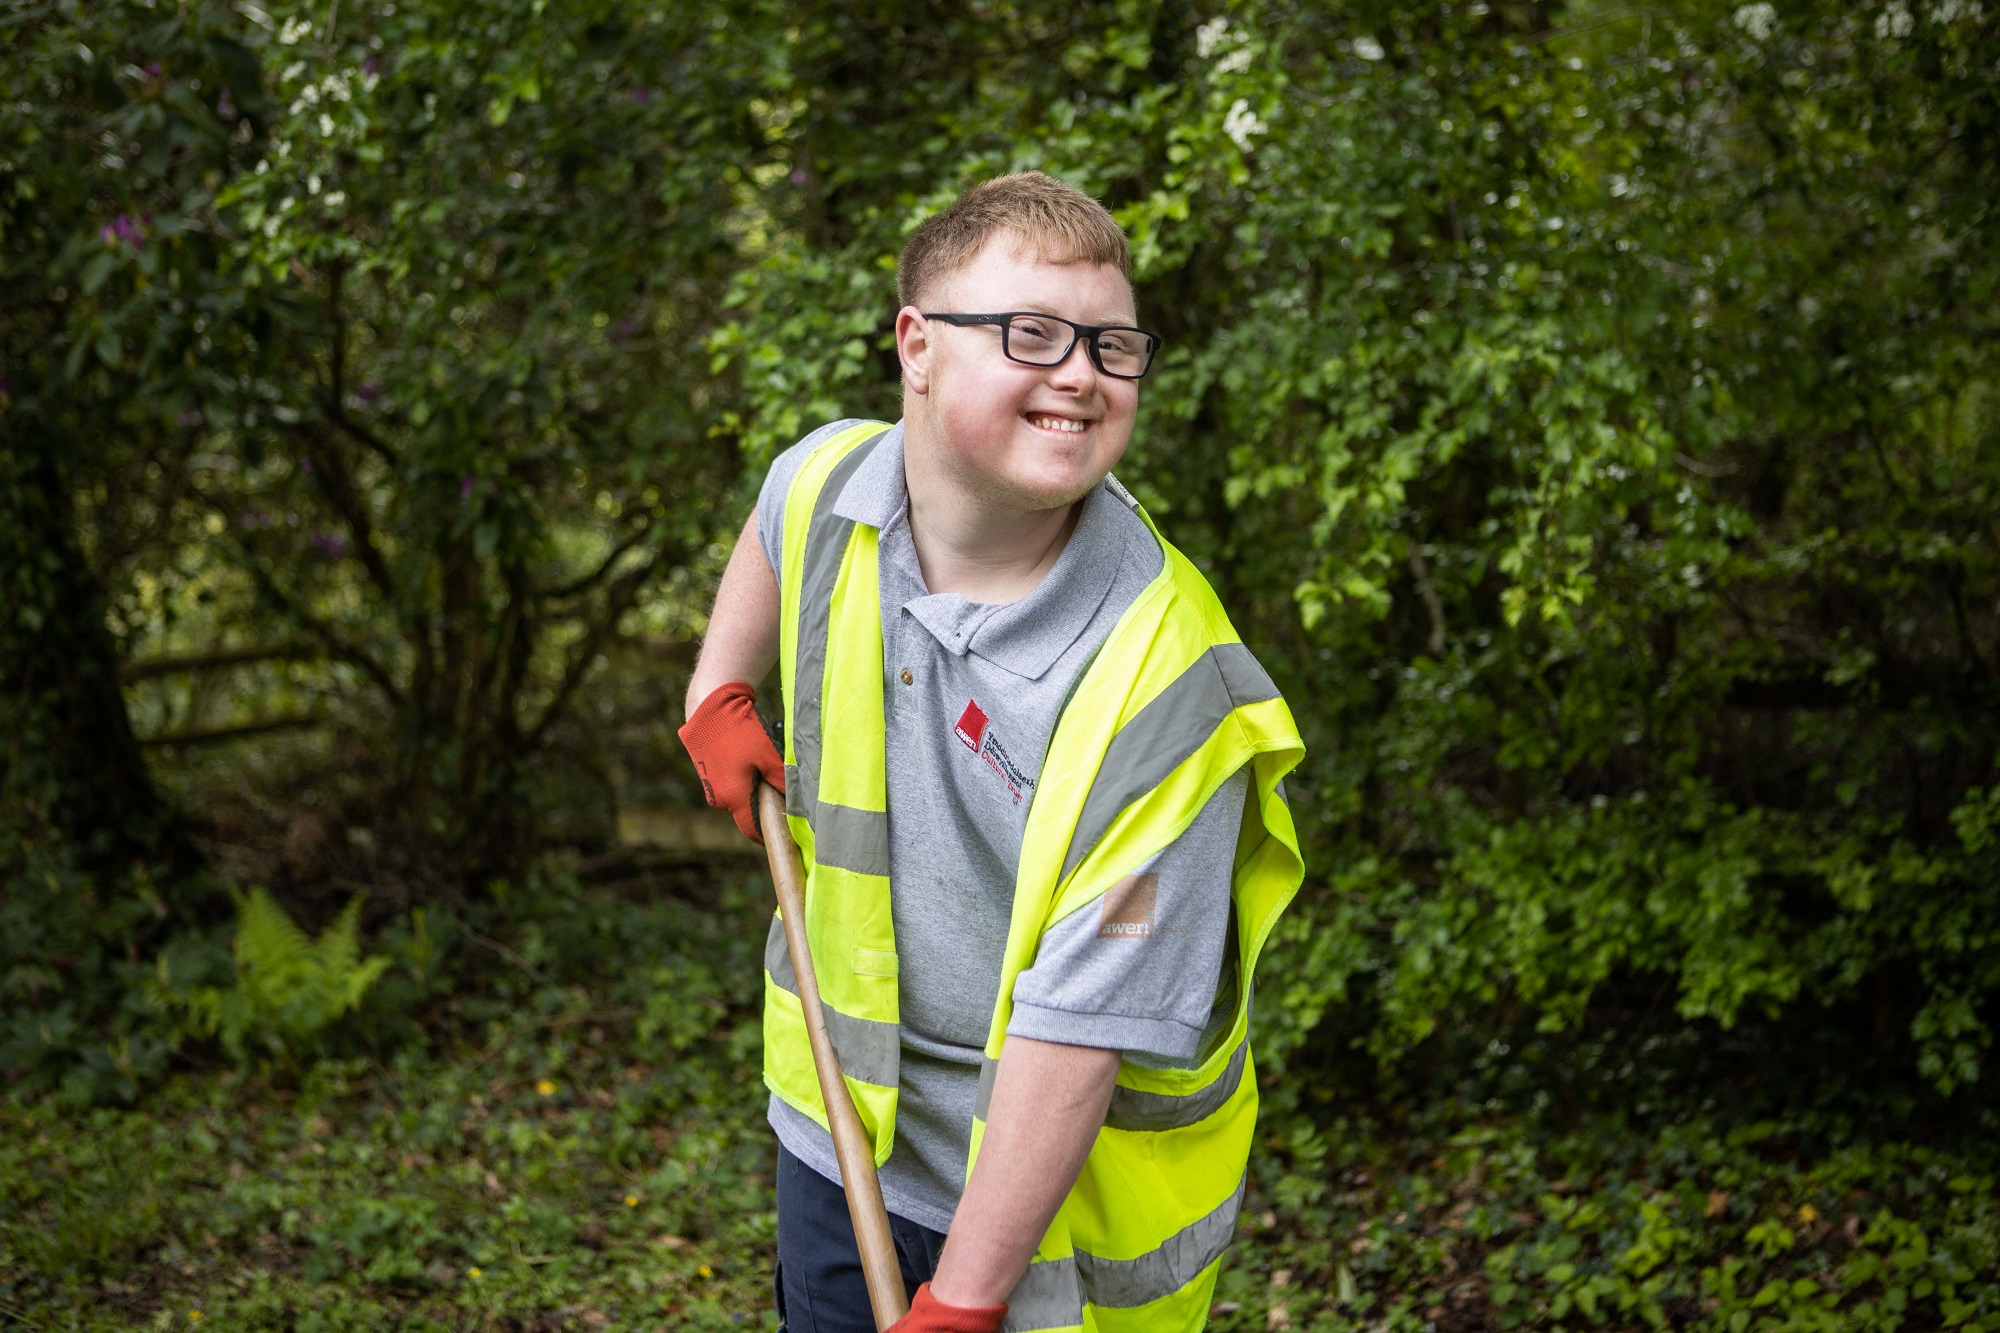 Man in high vis is gardening with Awen Cultural Trust's B-Leaf Centre. B-Leaf is a work based initiative for adults with disabilities based within Bryngarw Country Park